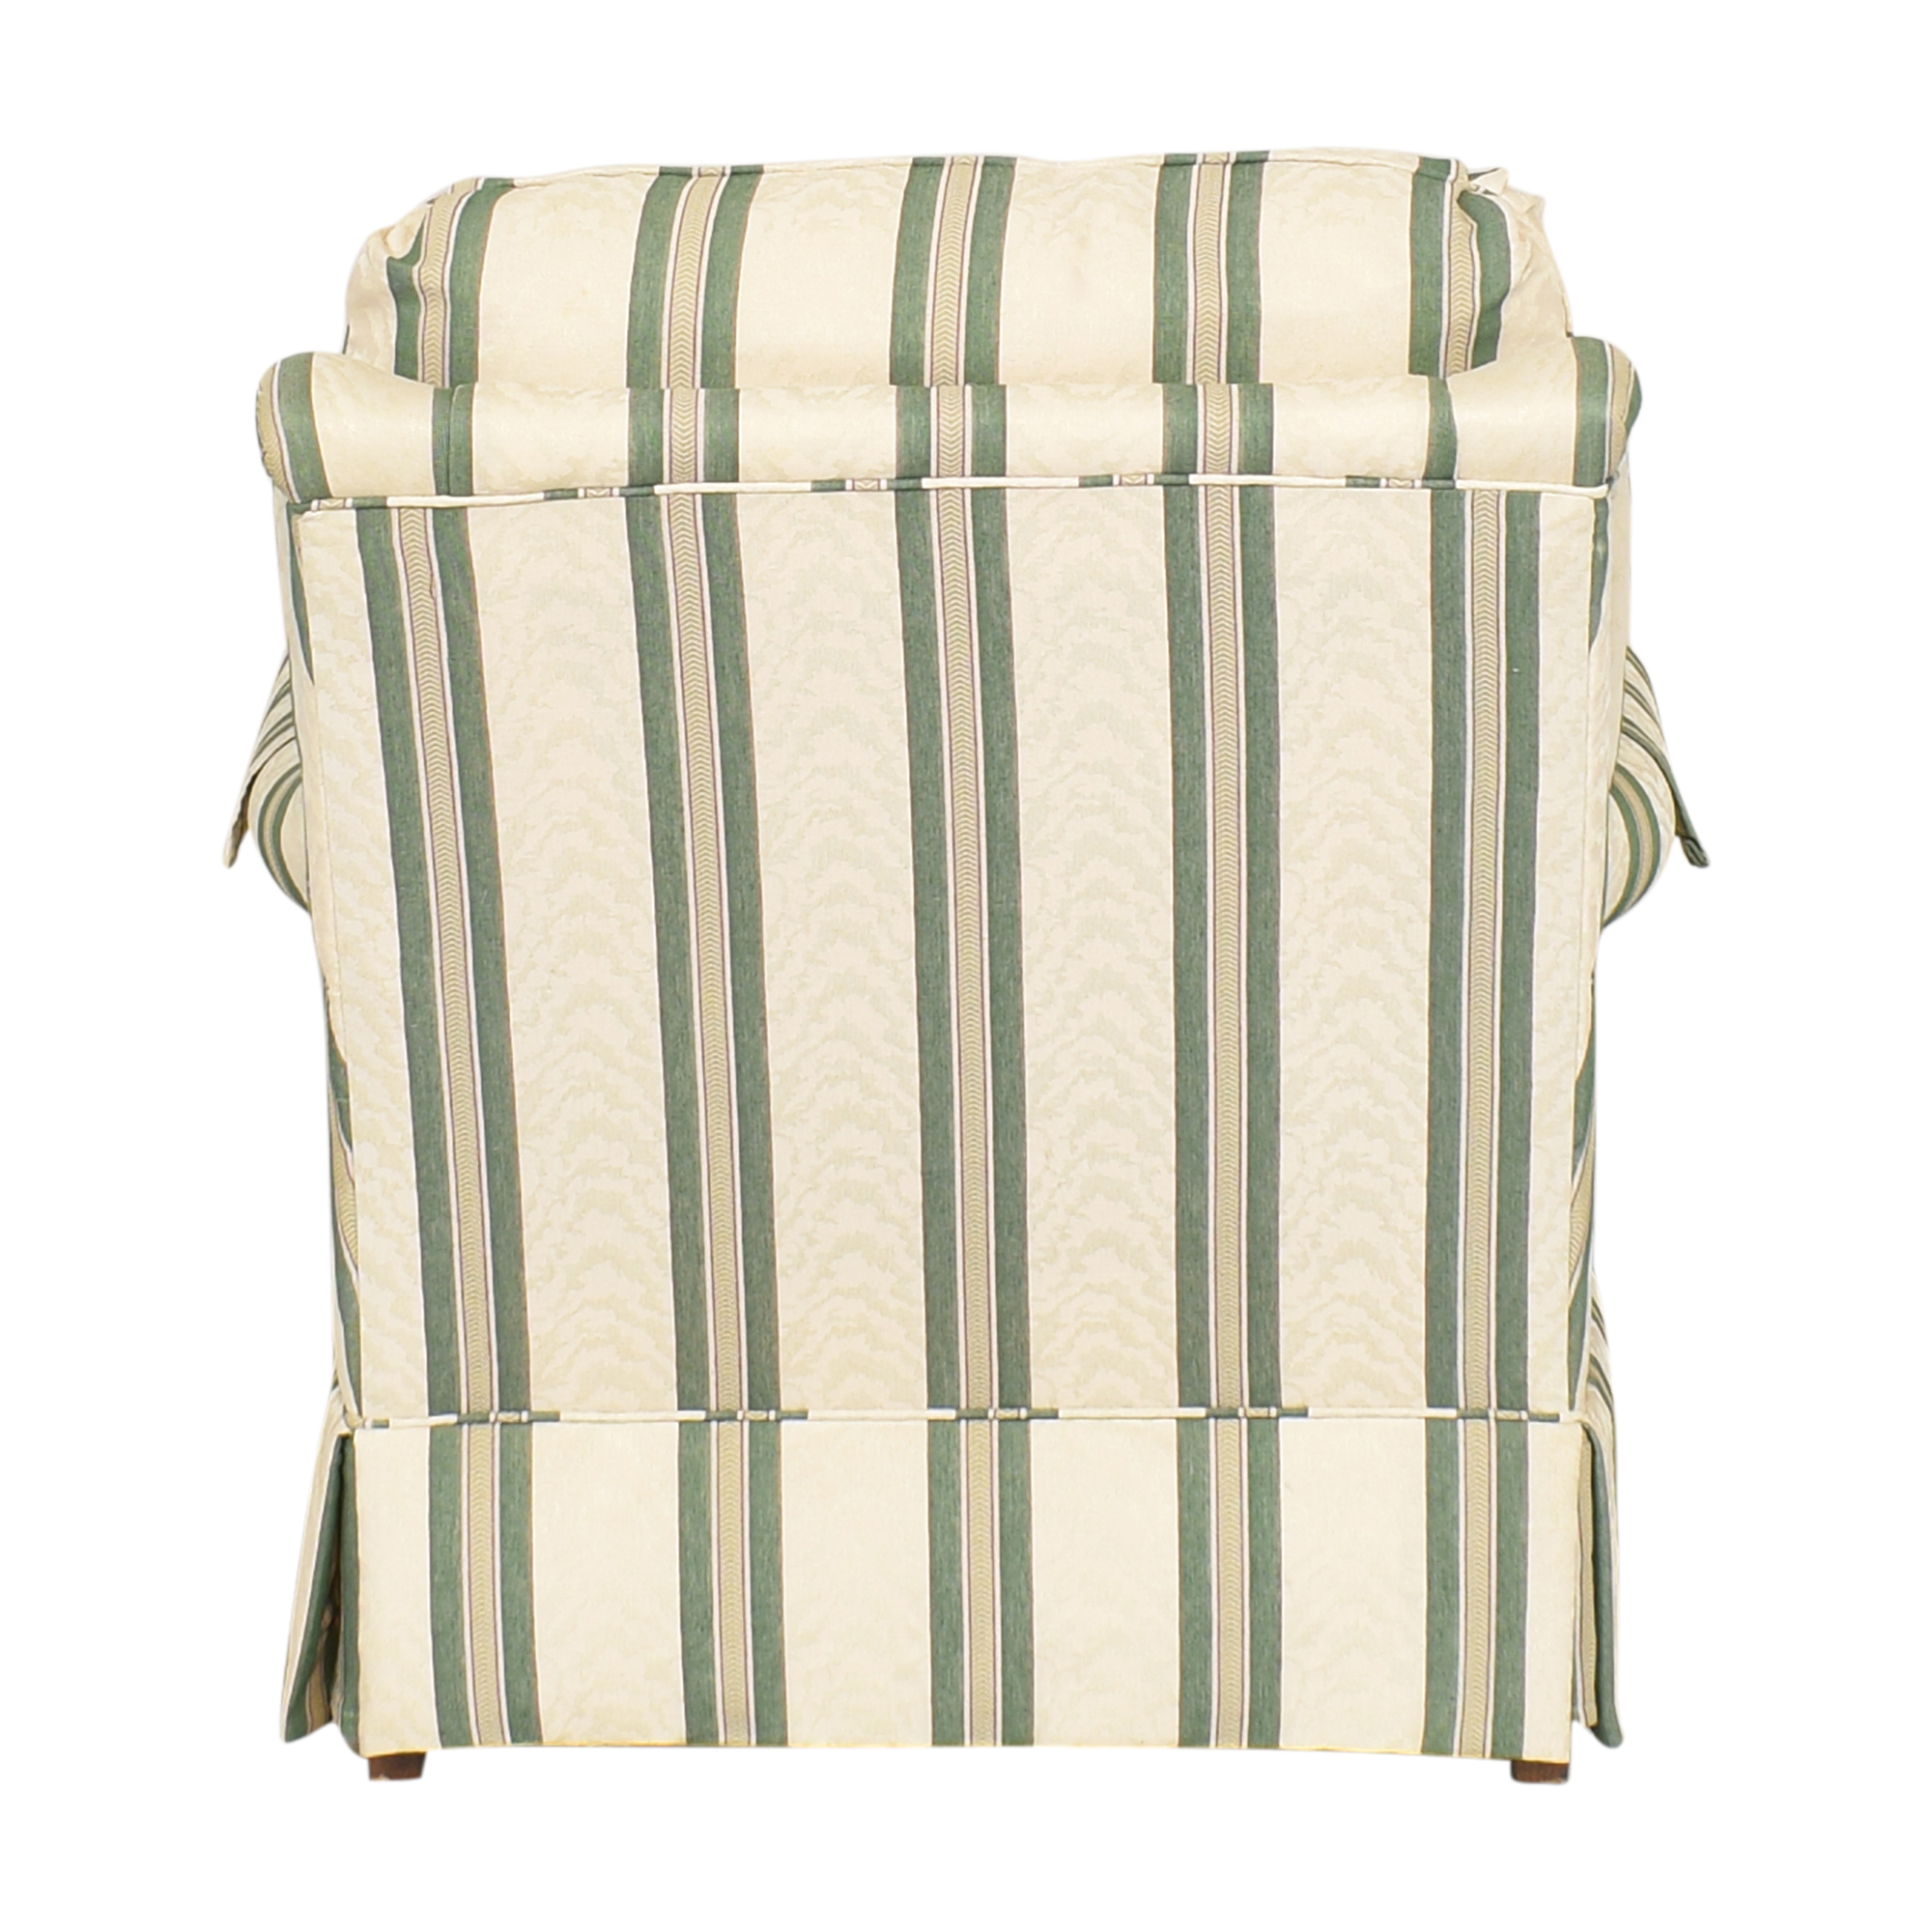 Pembrook Chair Pembrook Chair Upholstered Accent Chair and Ottoman ma